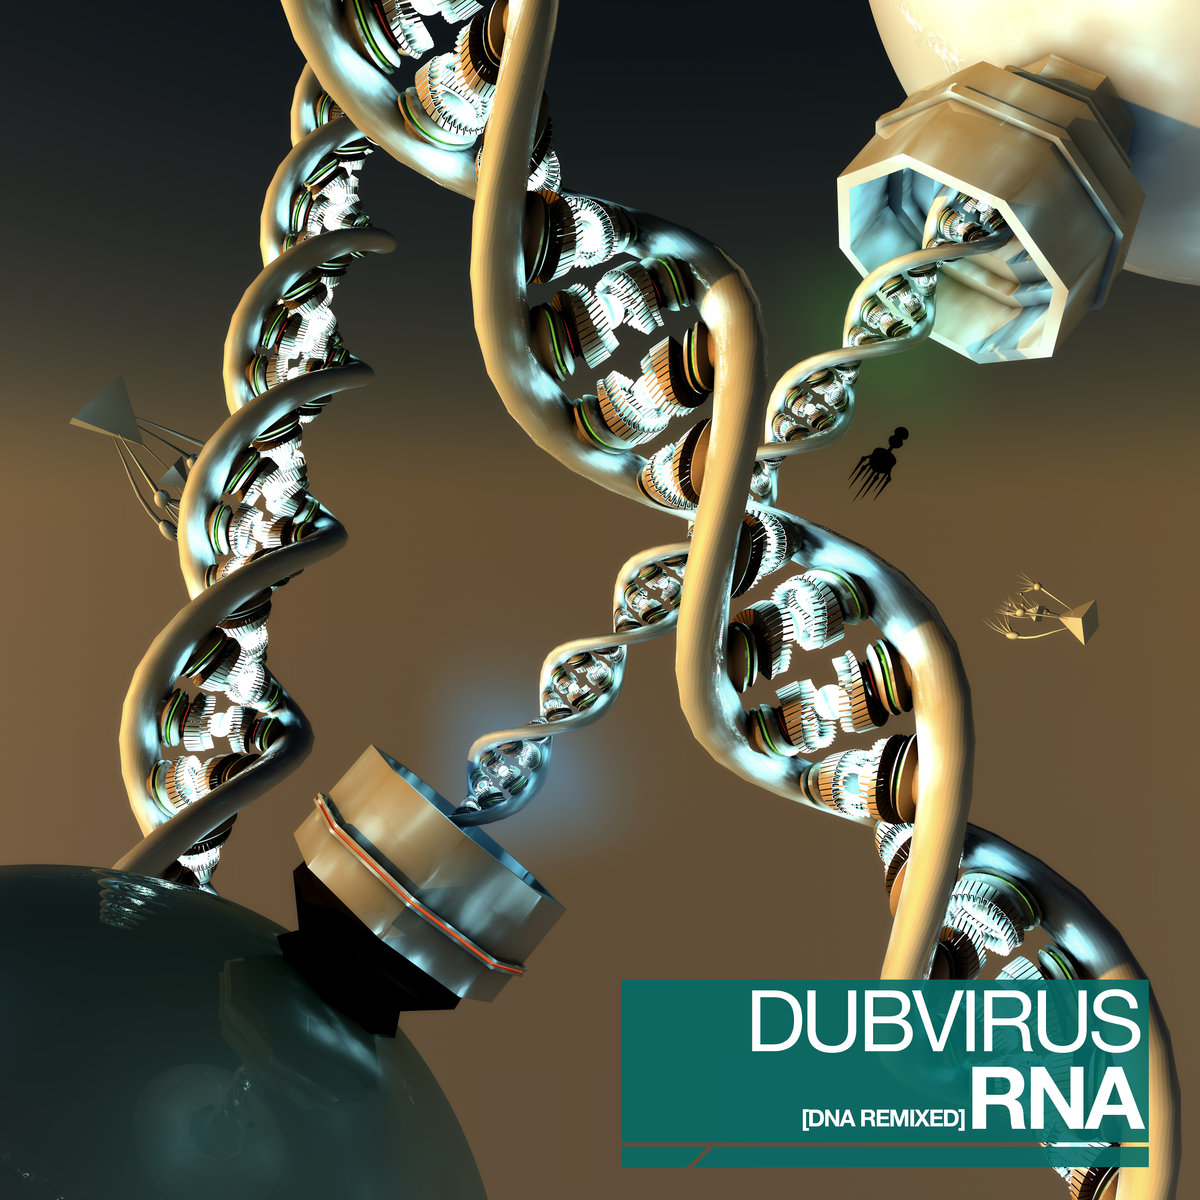 Dubvirus - RNA (DNA Remixed)